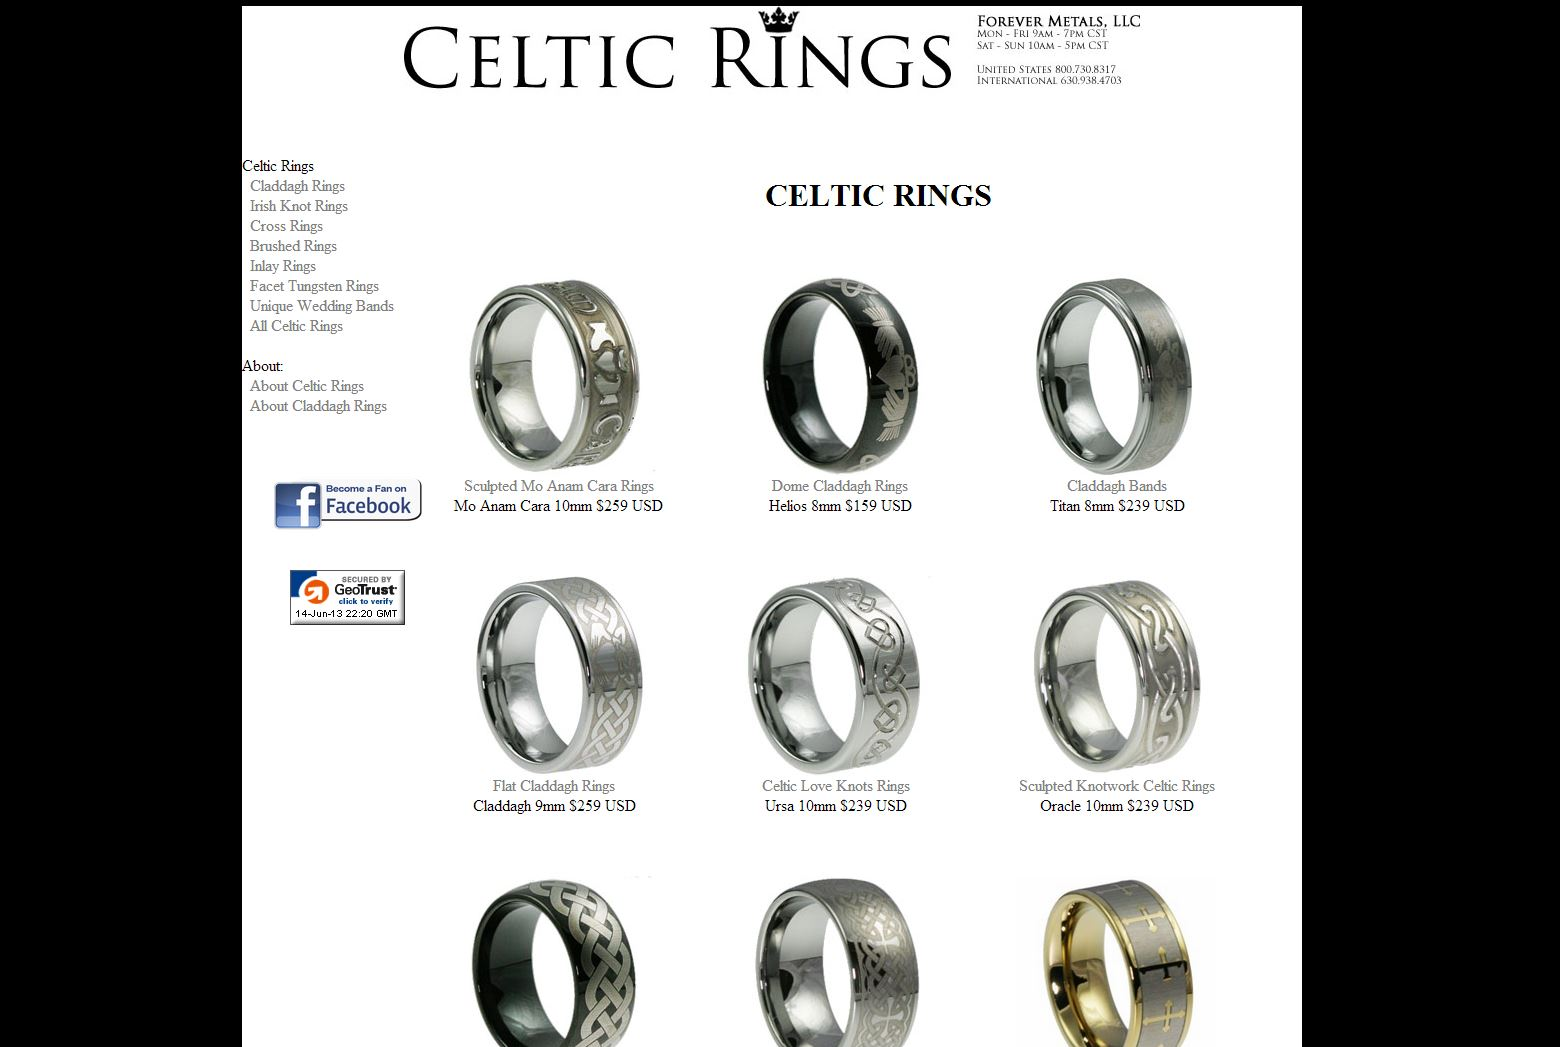 celtic rings rated 5  5 stars by 7 consumers